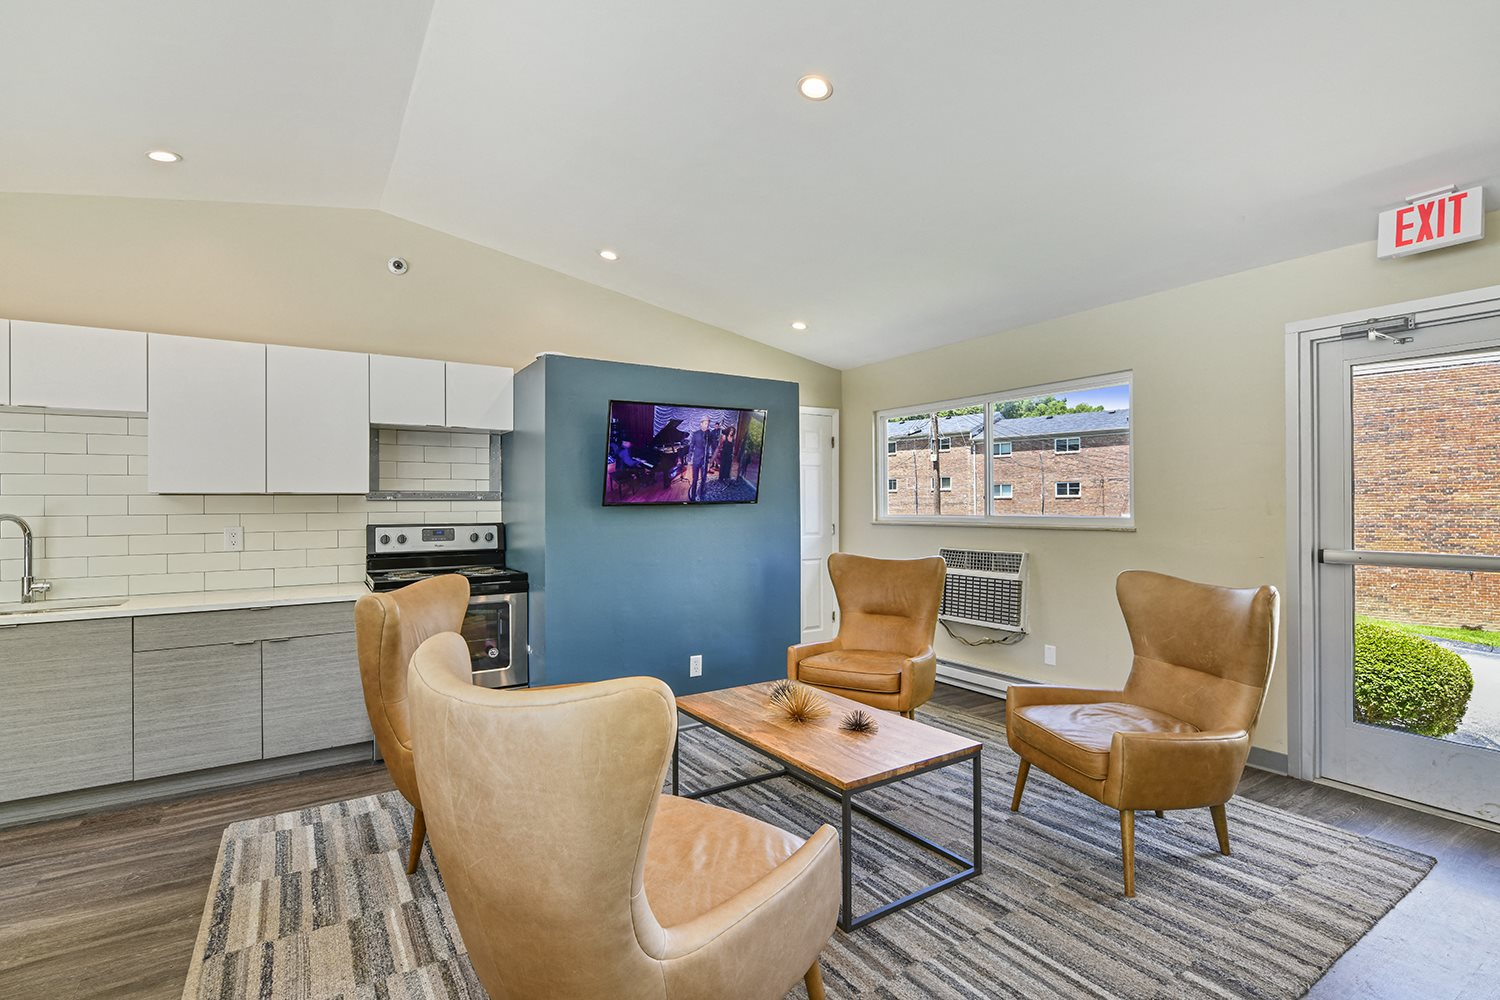 Living Room With Television at Heritage Hill Estates Apartments, Cincinnati, OH, 45227